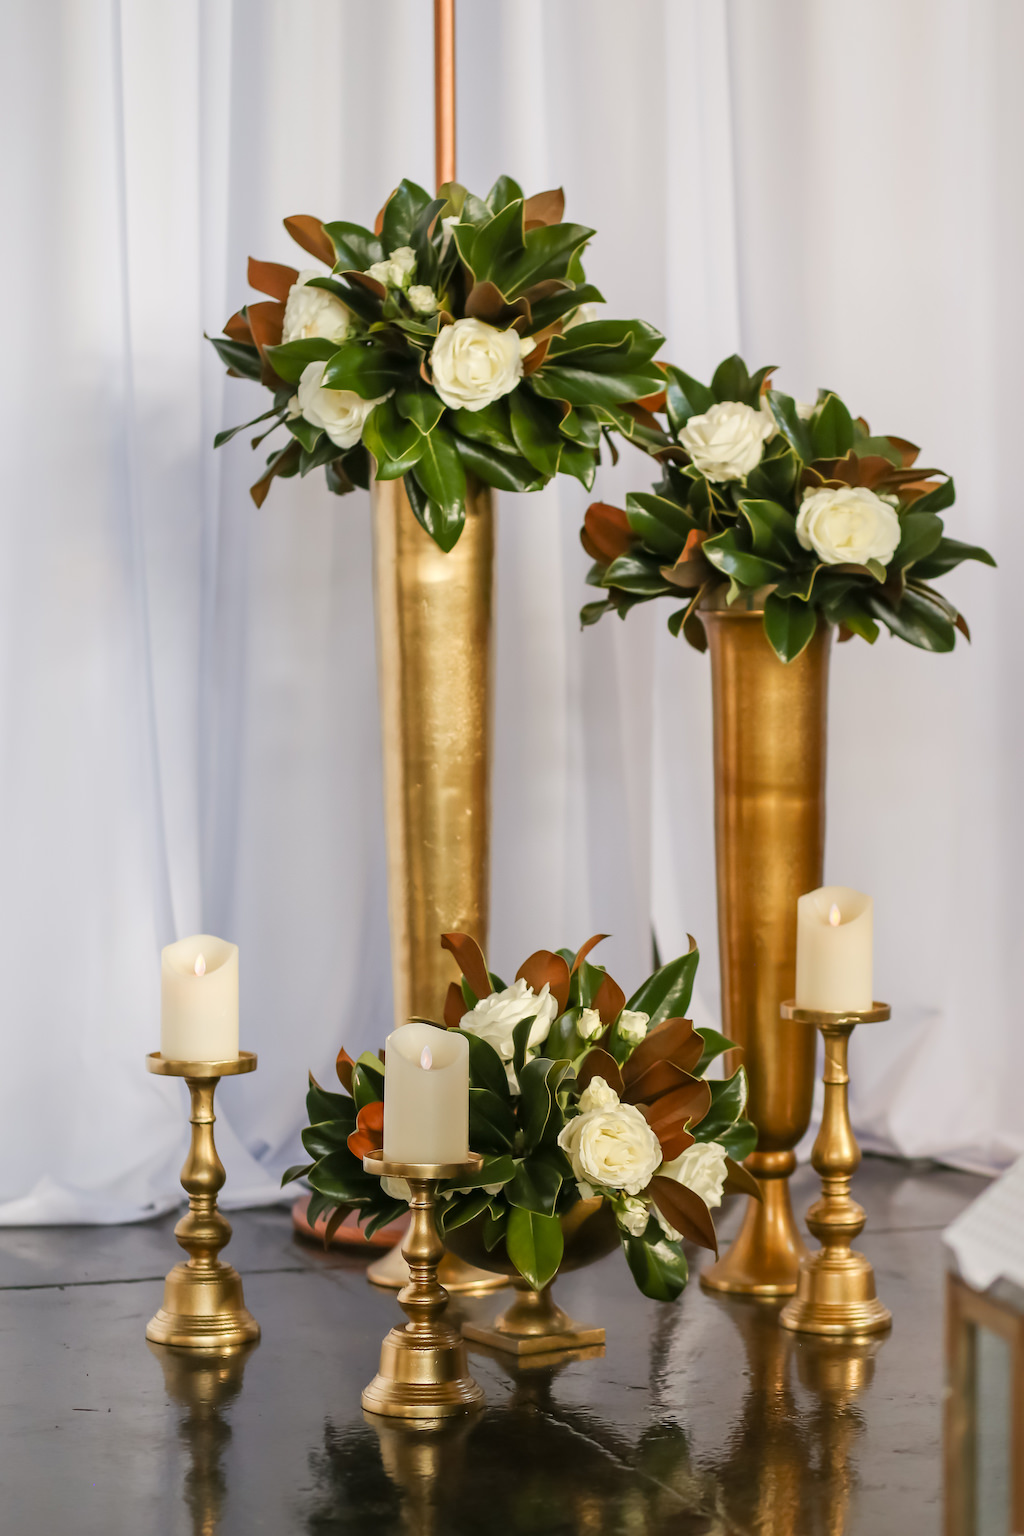 Industrial Inspired Wedding Ceremony Decor, Gold Metal Vases with White Rose and Greenery Florals, Gold Candlesticks   Tampa Bay Wedding Photographer Lifelong Photography Studios   Wedding Rentals A Chair Affair